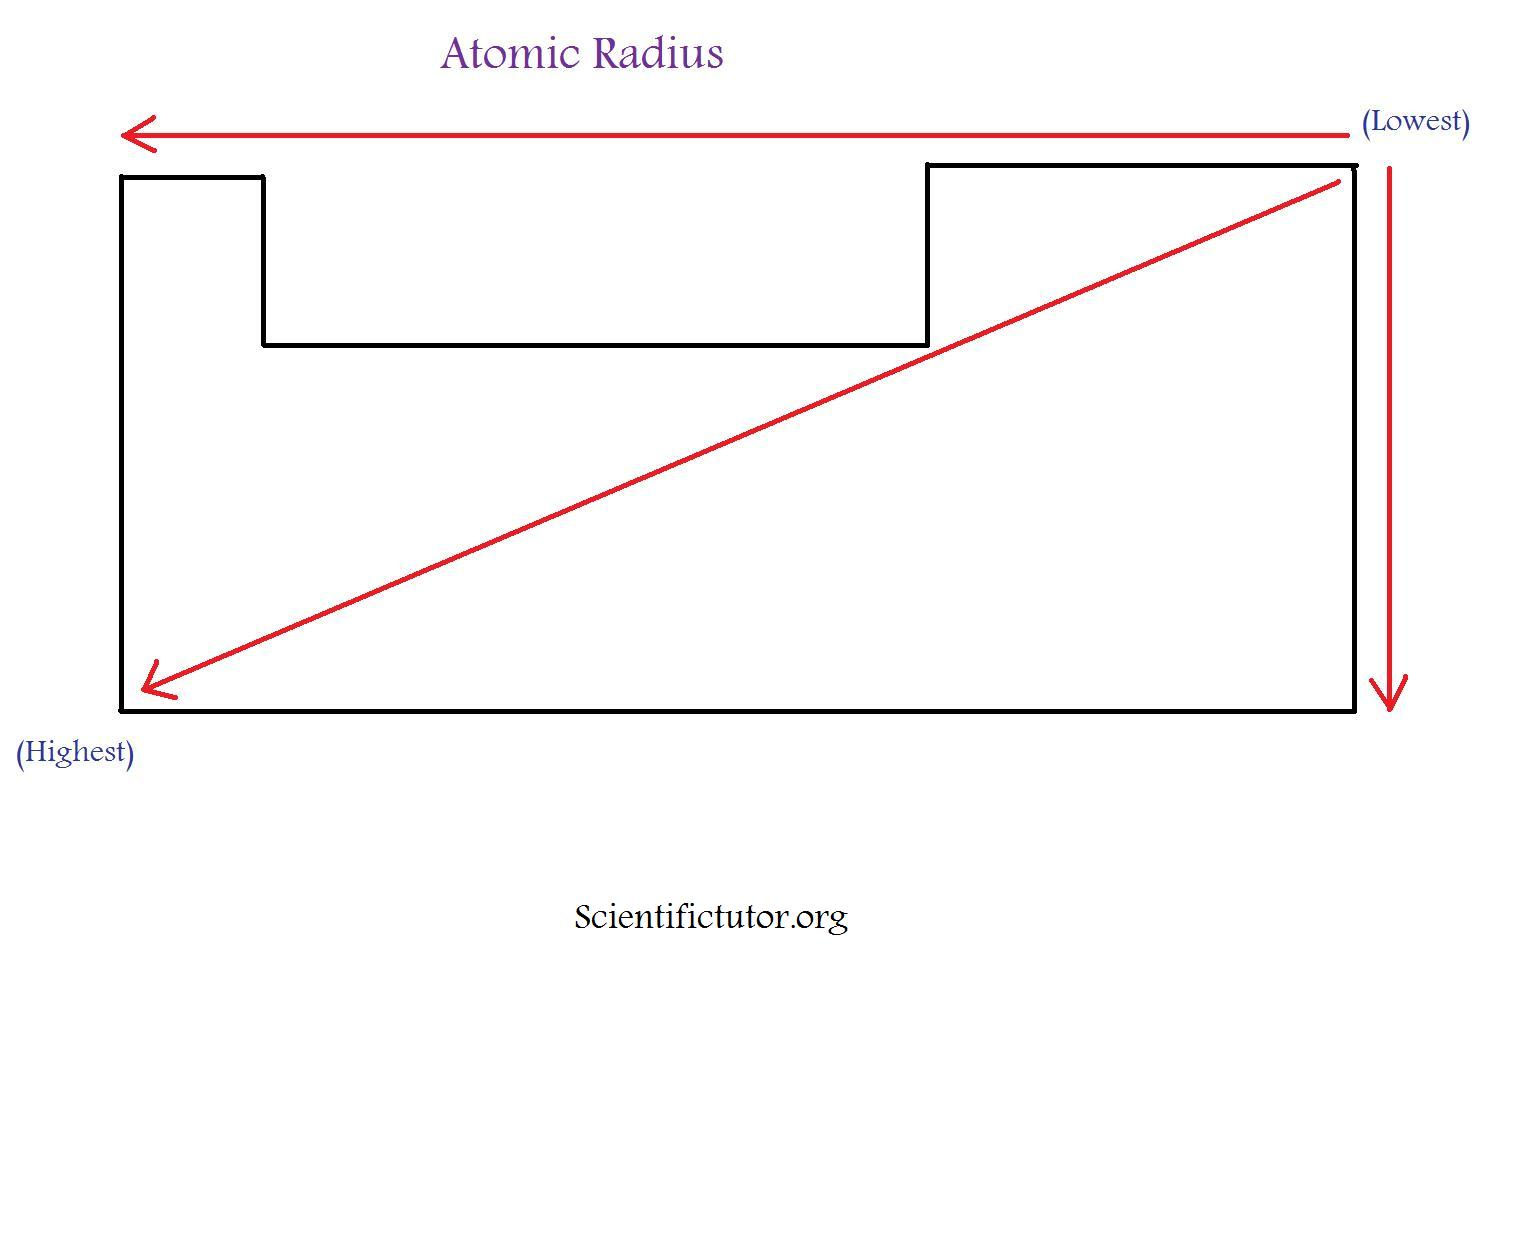 Chem atomic radius scientific tutor cartoon periodic table atomic radius urtaz Image collections